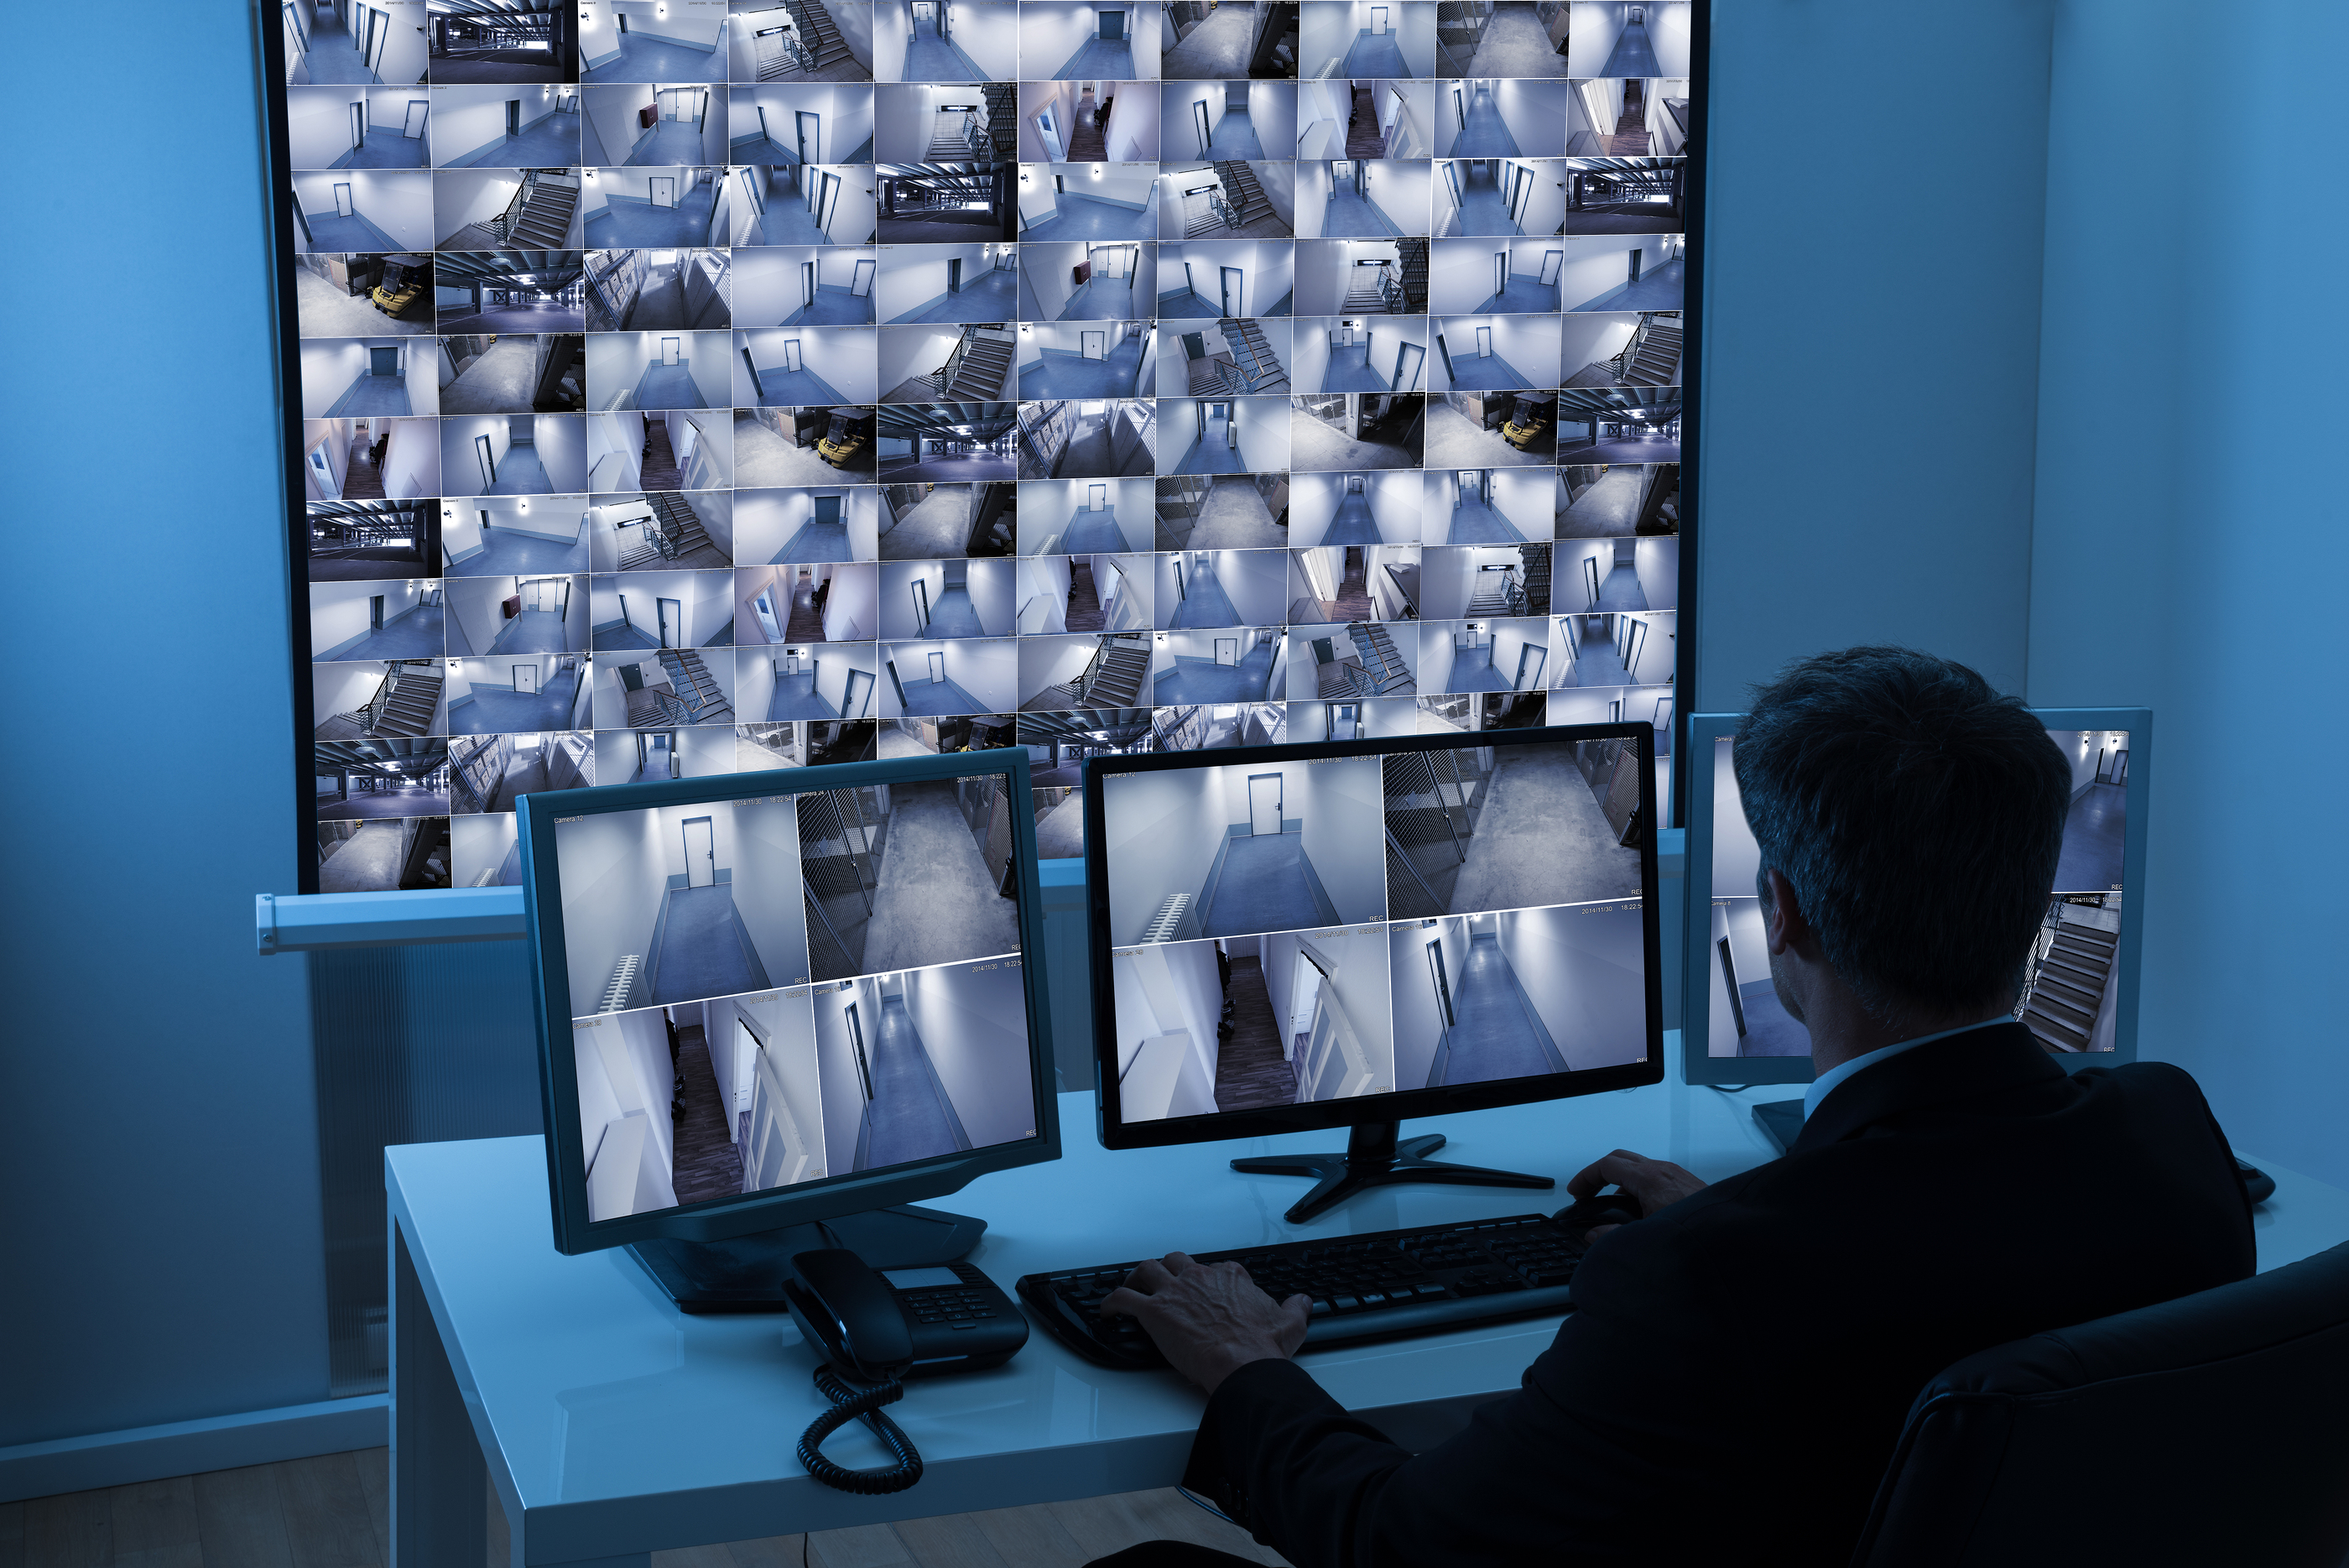 Man In Control Room Monitoring Cctv Footage.jpg